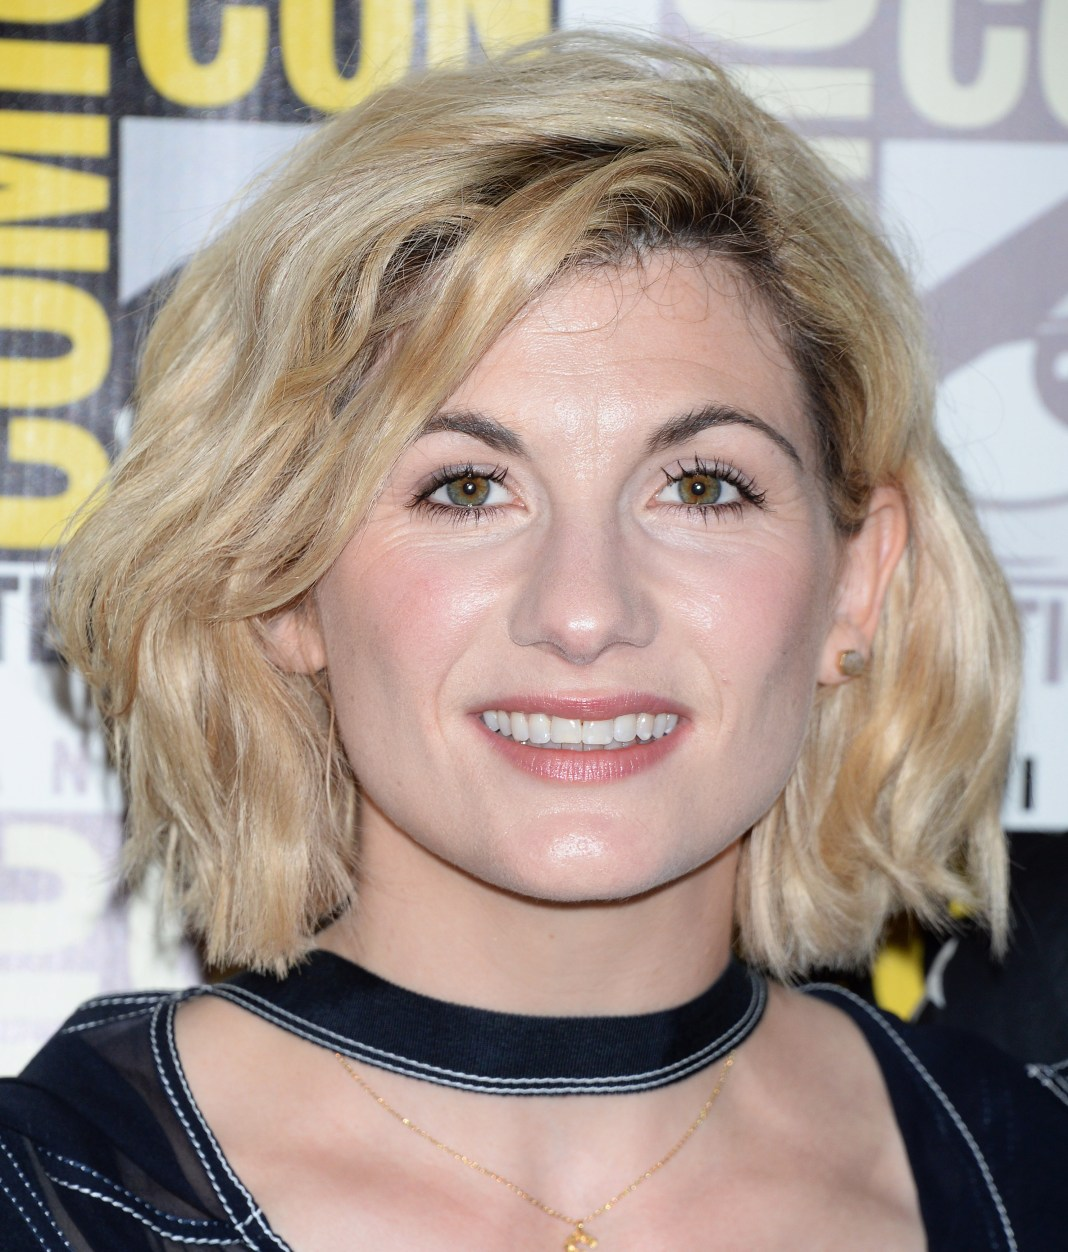 Jodie Whittaker 'Doctor Who' TV show photocall, Comic-Con International, San Diego, USA - 19 Jul 2018 - Photo by Broadimage/REX/Shutterstock